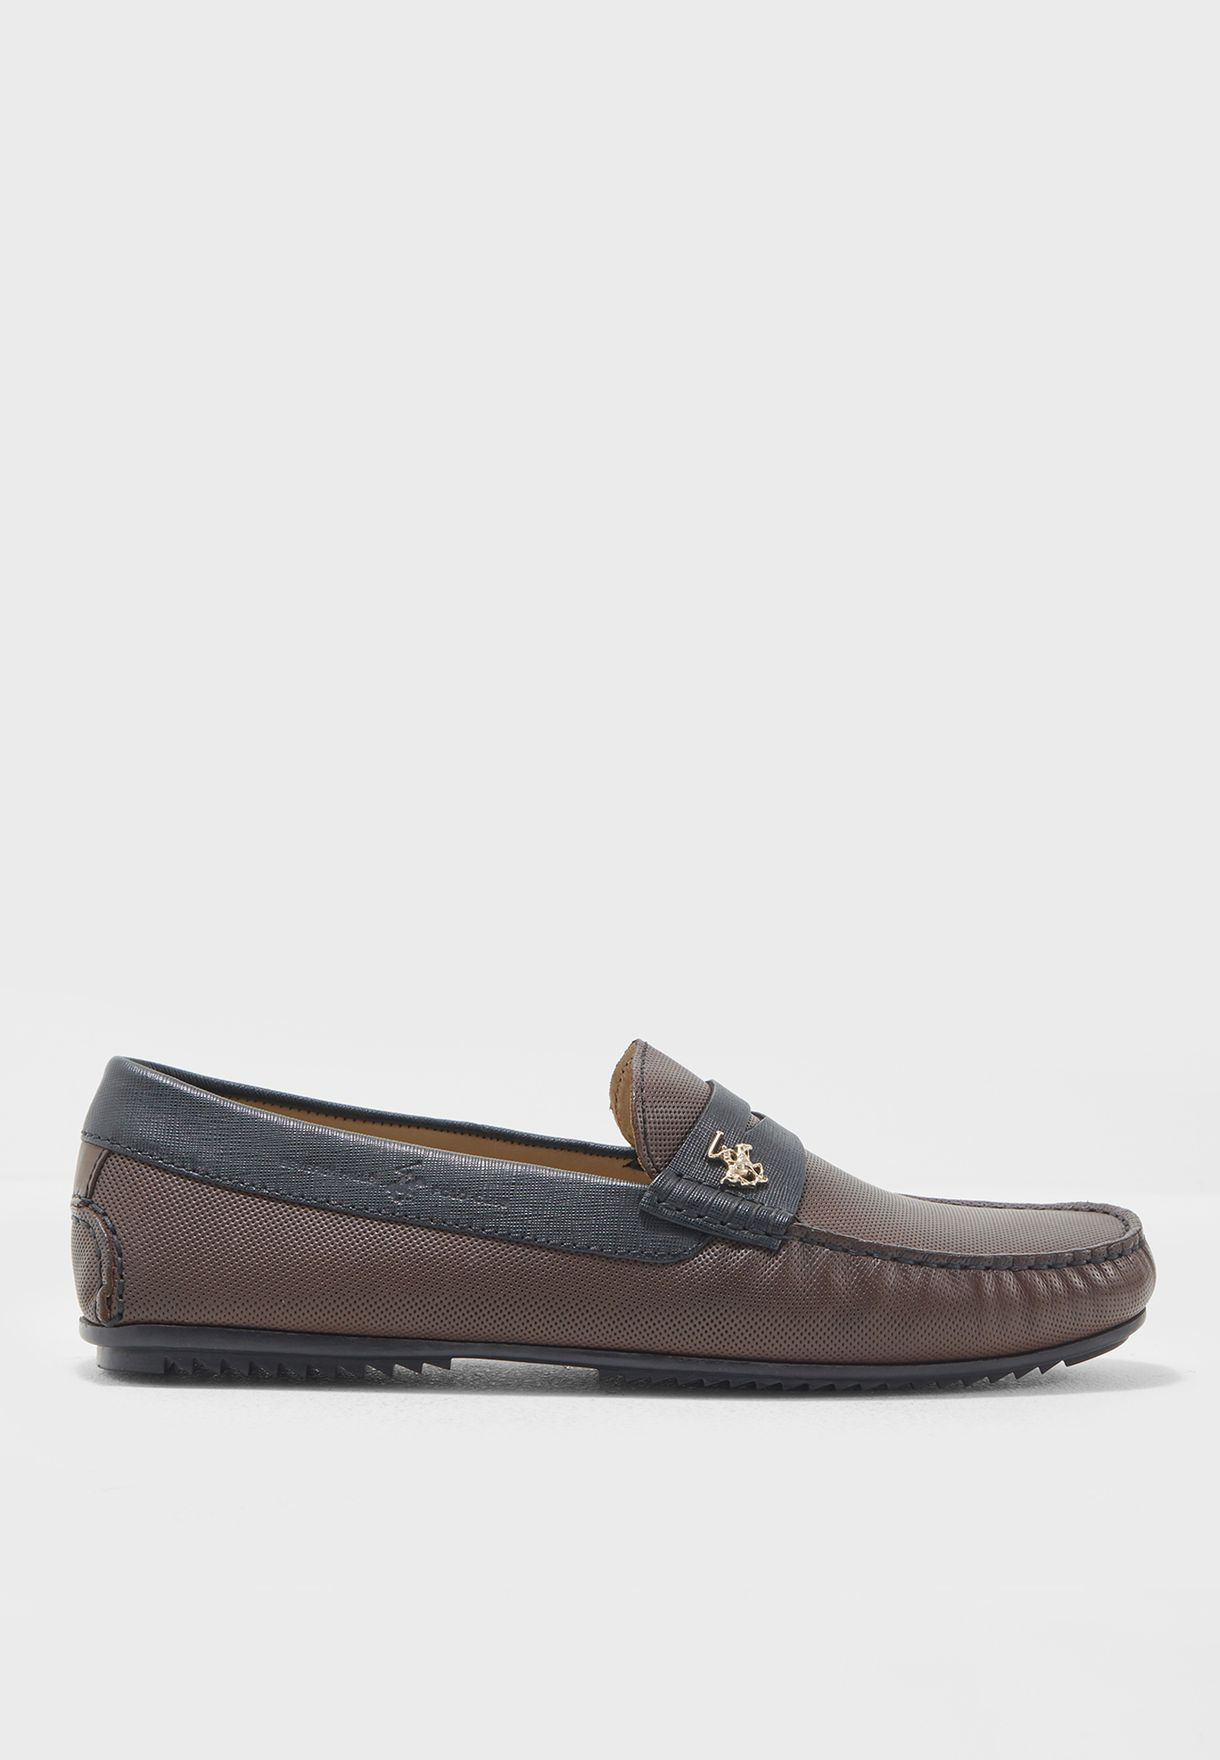 967d7f03e94 Shop Beverly Hills Polo Club browns Leather Loafers BP SH9129 for Men in  Saudi - BH916SH92QXB